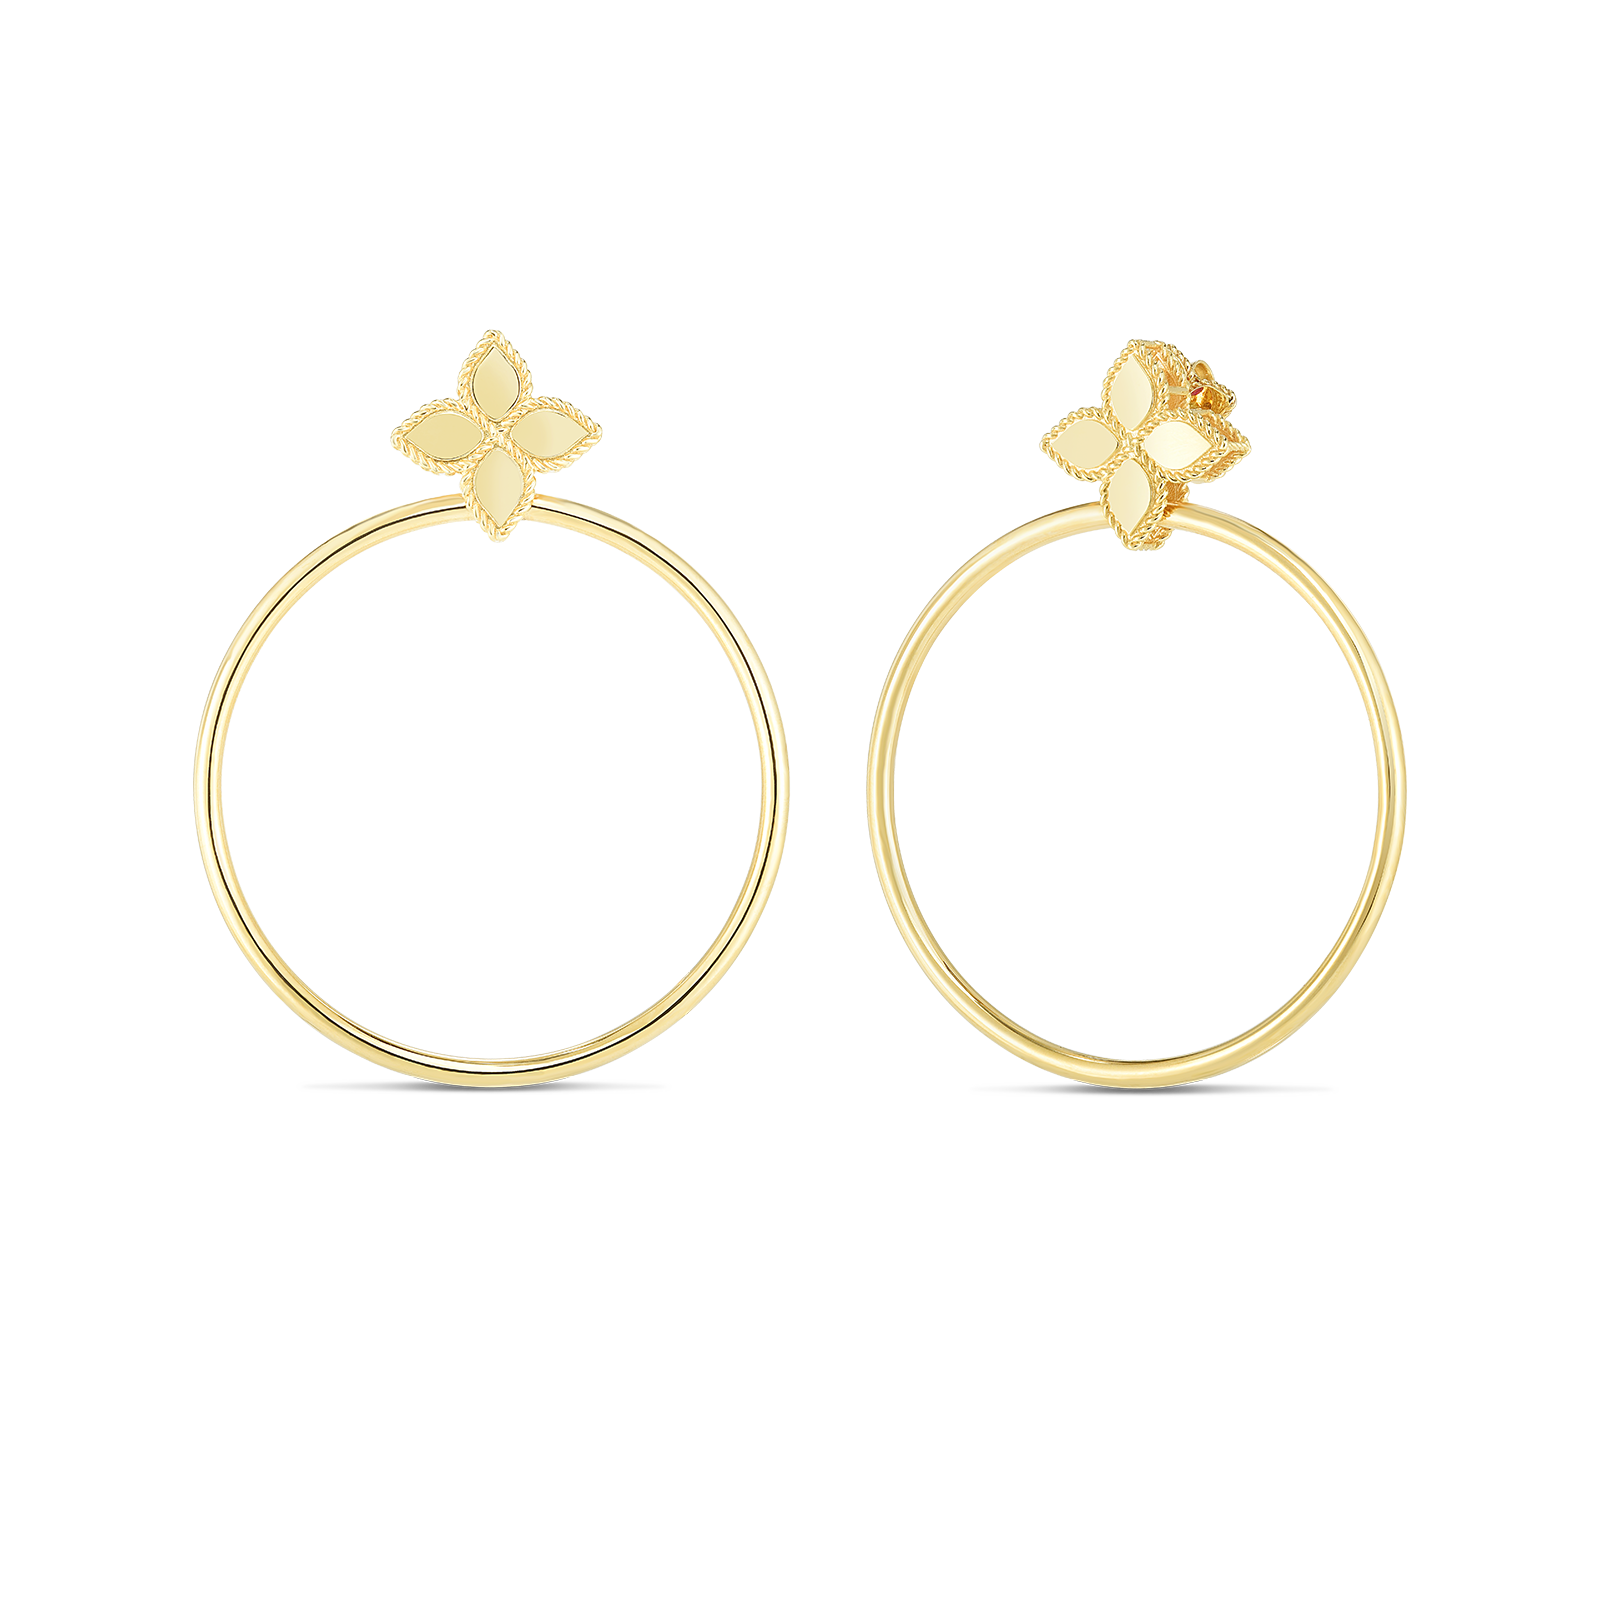 18K Yellow Gold Princess Flower Earrings With Attached Hoop